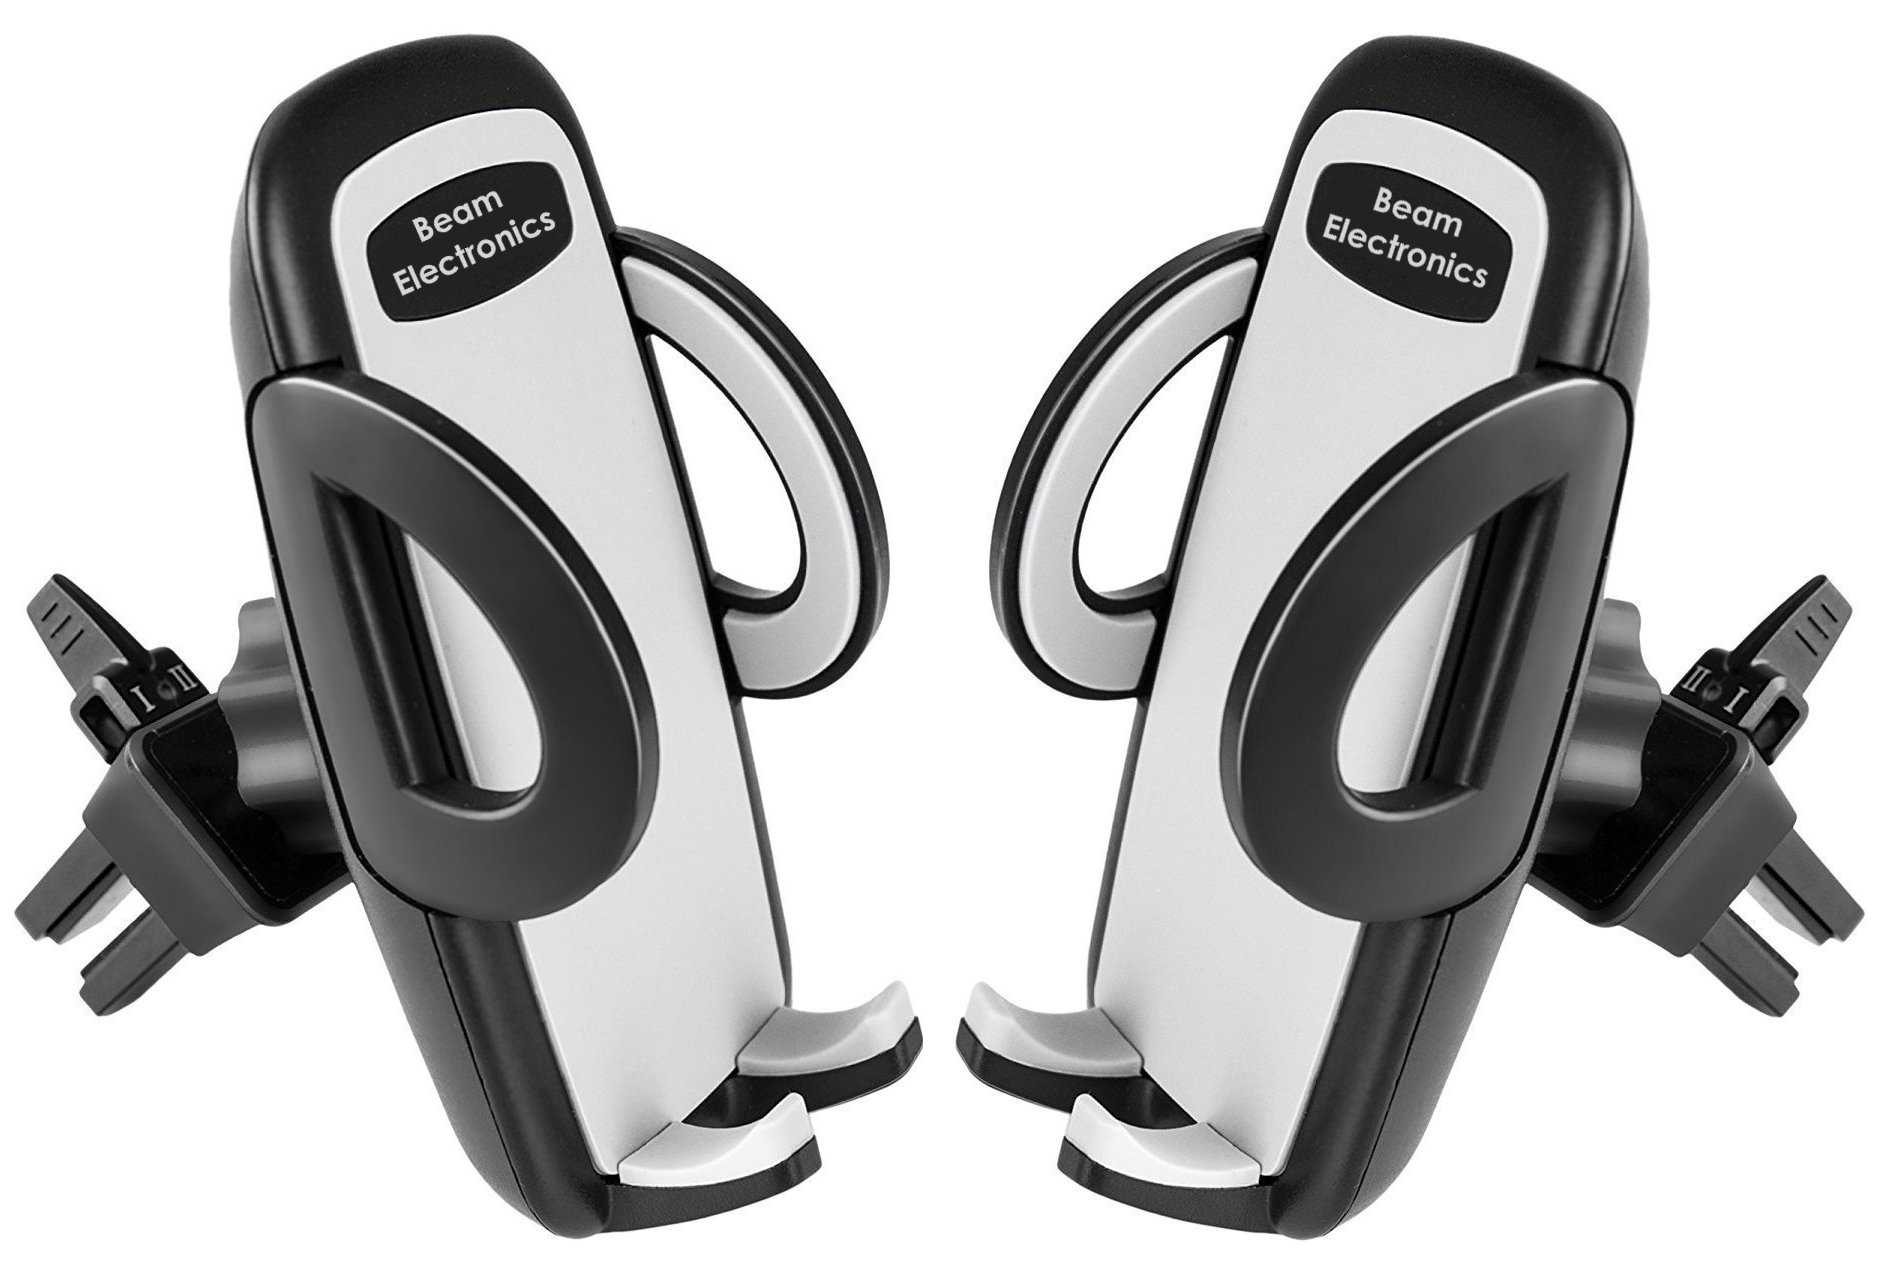 Beam Electronics (2 PACK) Universal Smartphone Car Air Vent Mount Holder Cradle Compatible with iPhone X 8 8 Plus 7 7 Plus SE 6s 6 Plus 6 5s 5 4s 4 Samsung Galaxy S6 S5 S4 LG Nexus Sony Nokia and More